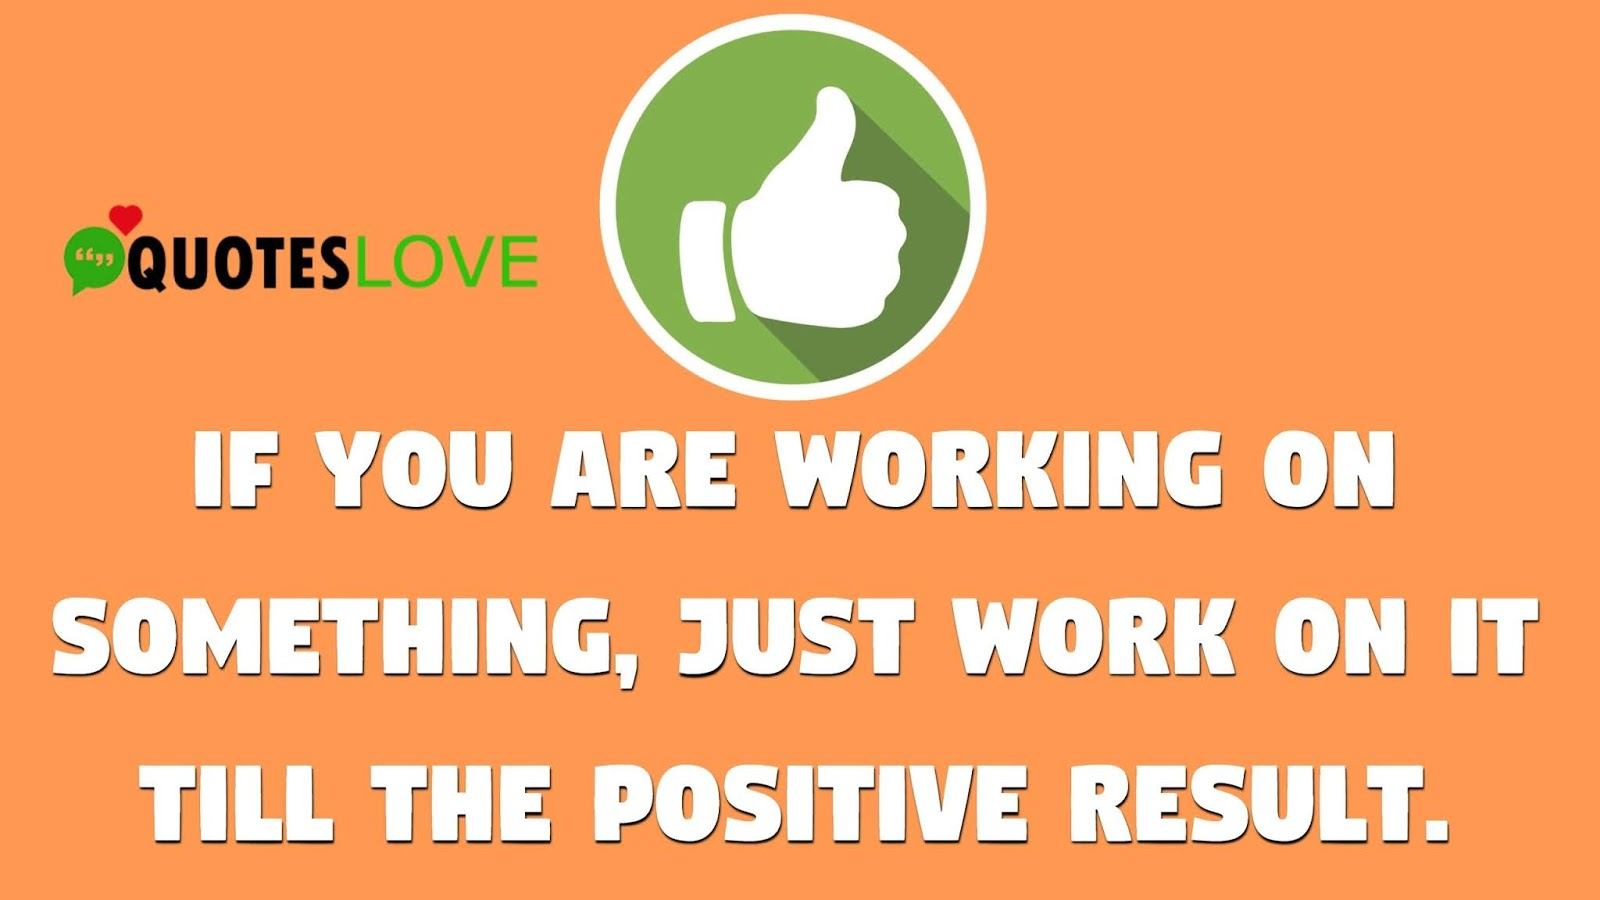 If you are working on something, just work on it till the positive result.